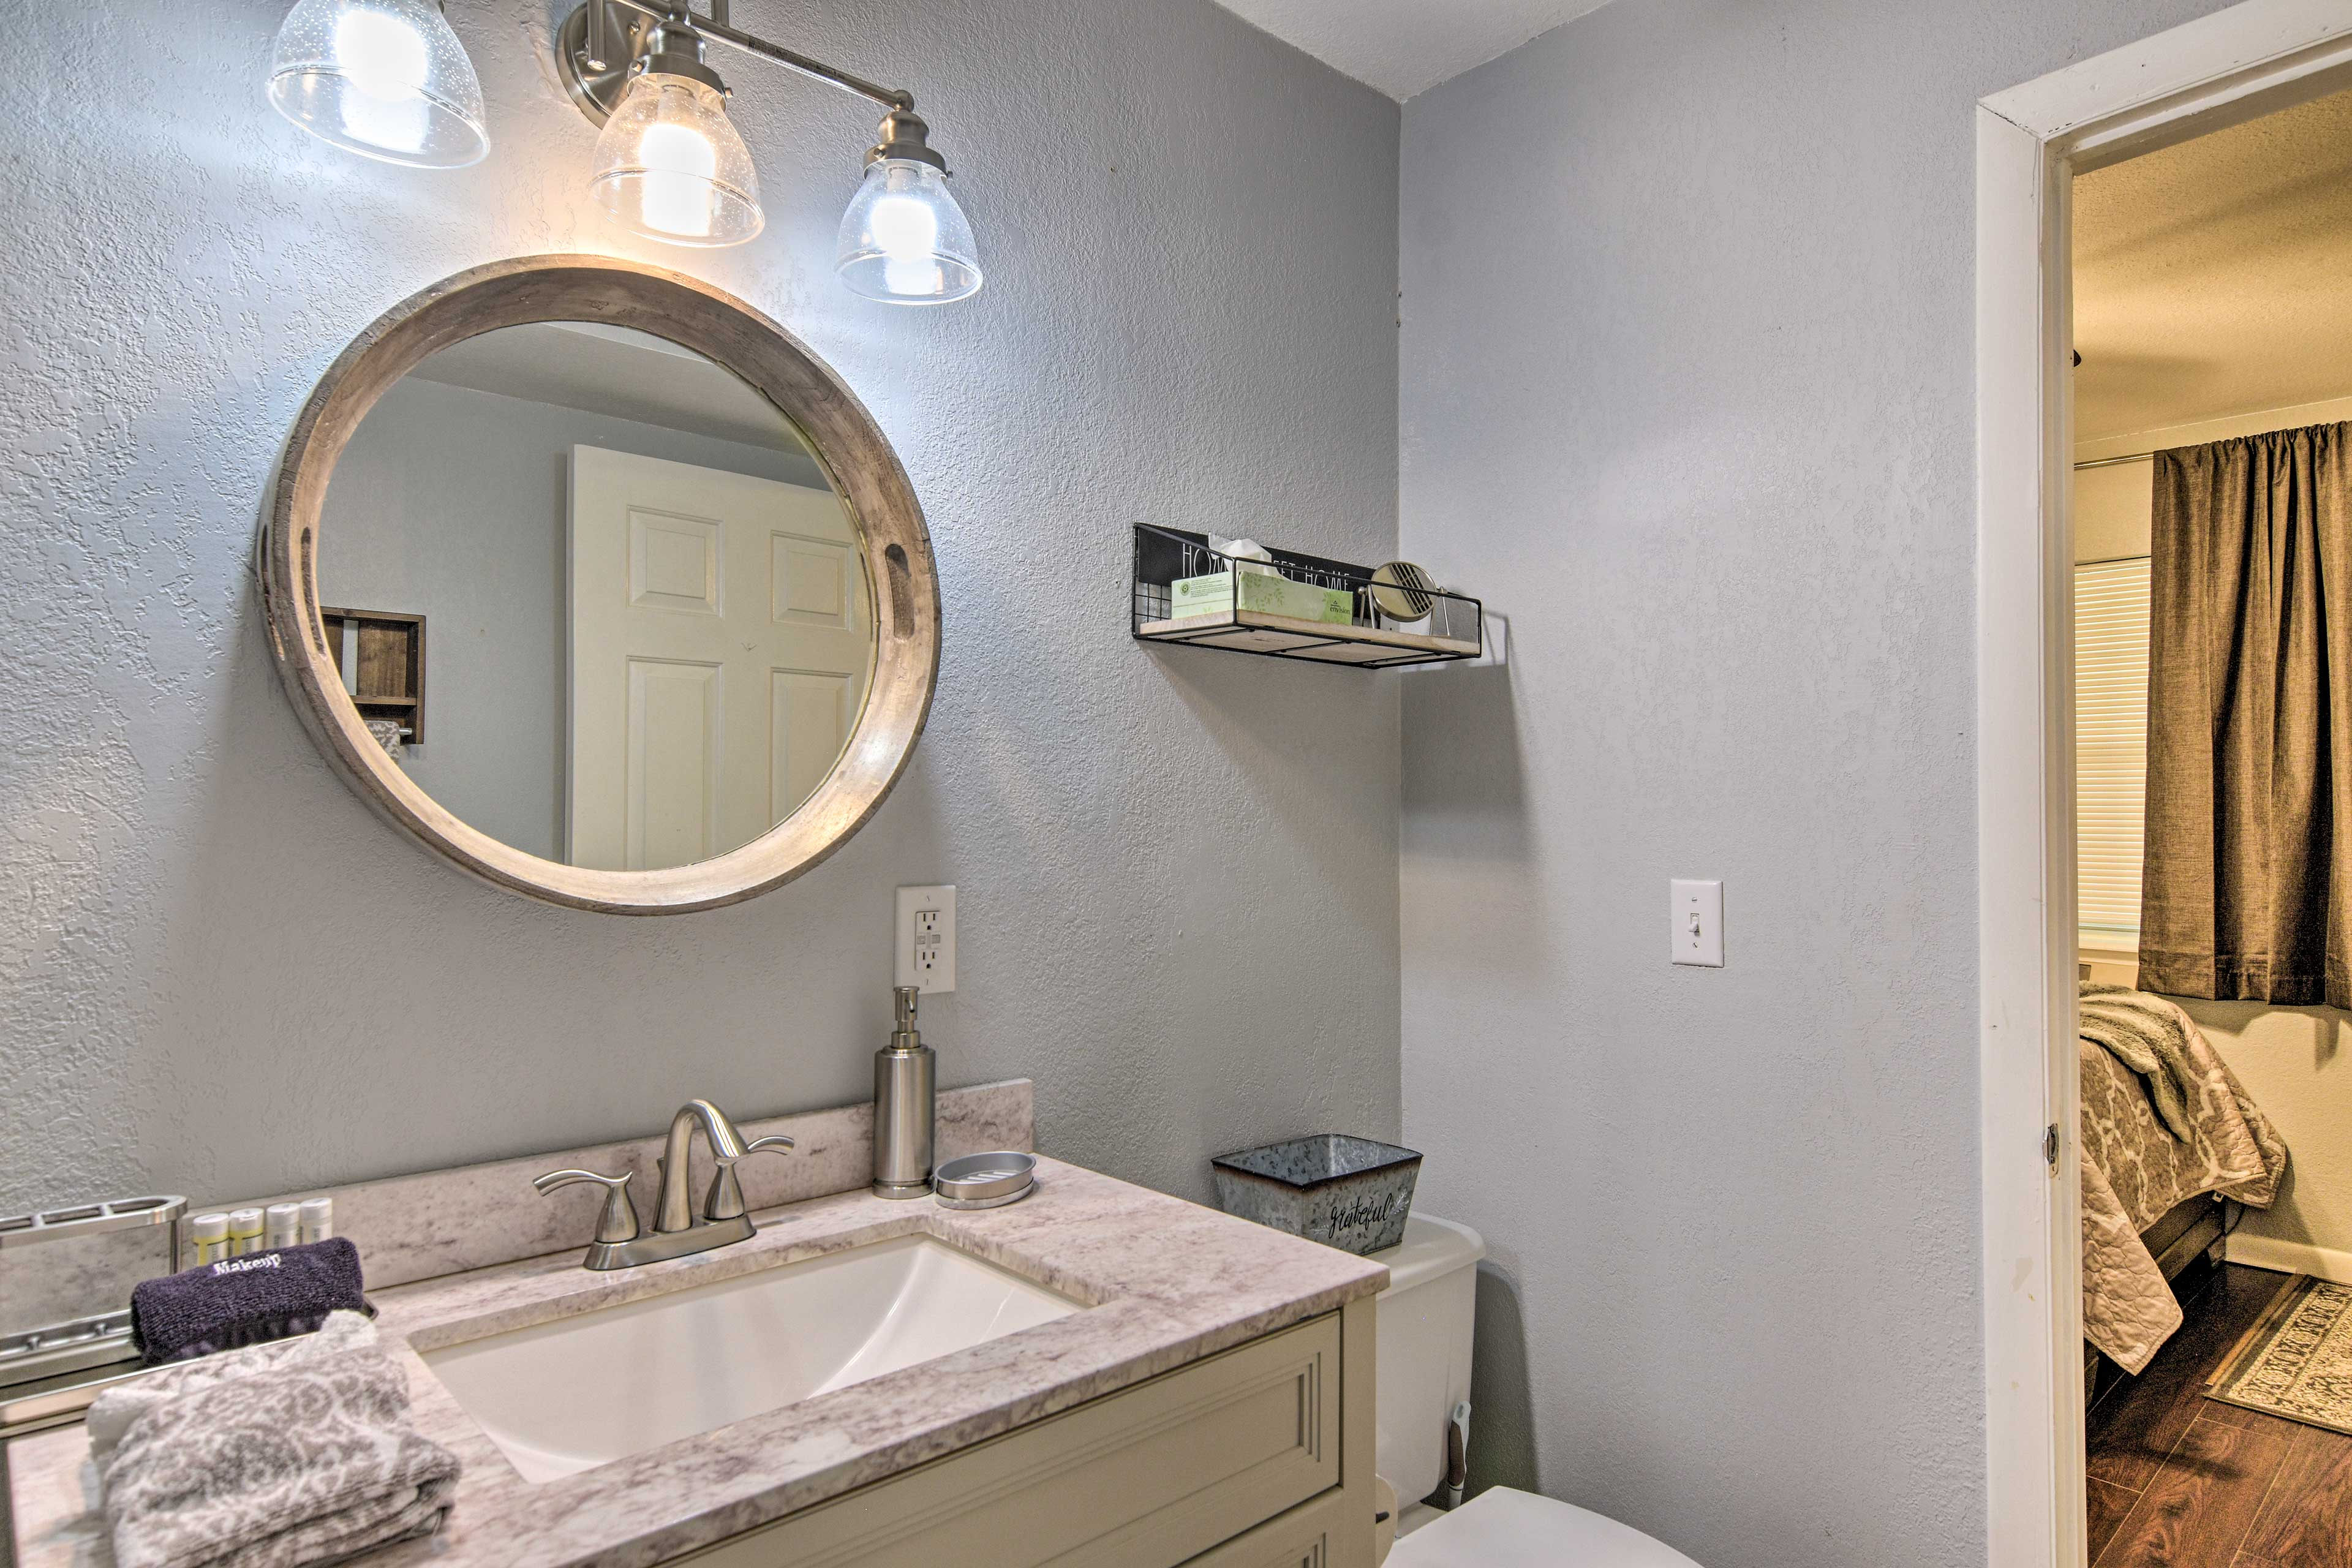 Step into the new walk-in shower with complimentary towels.